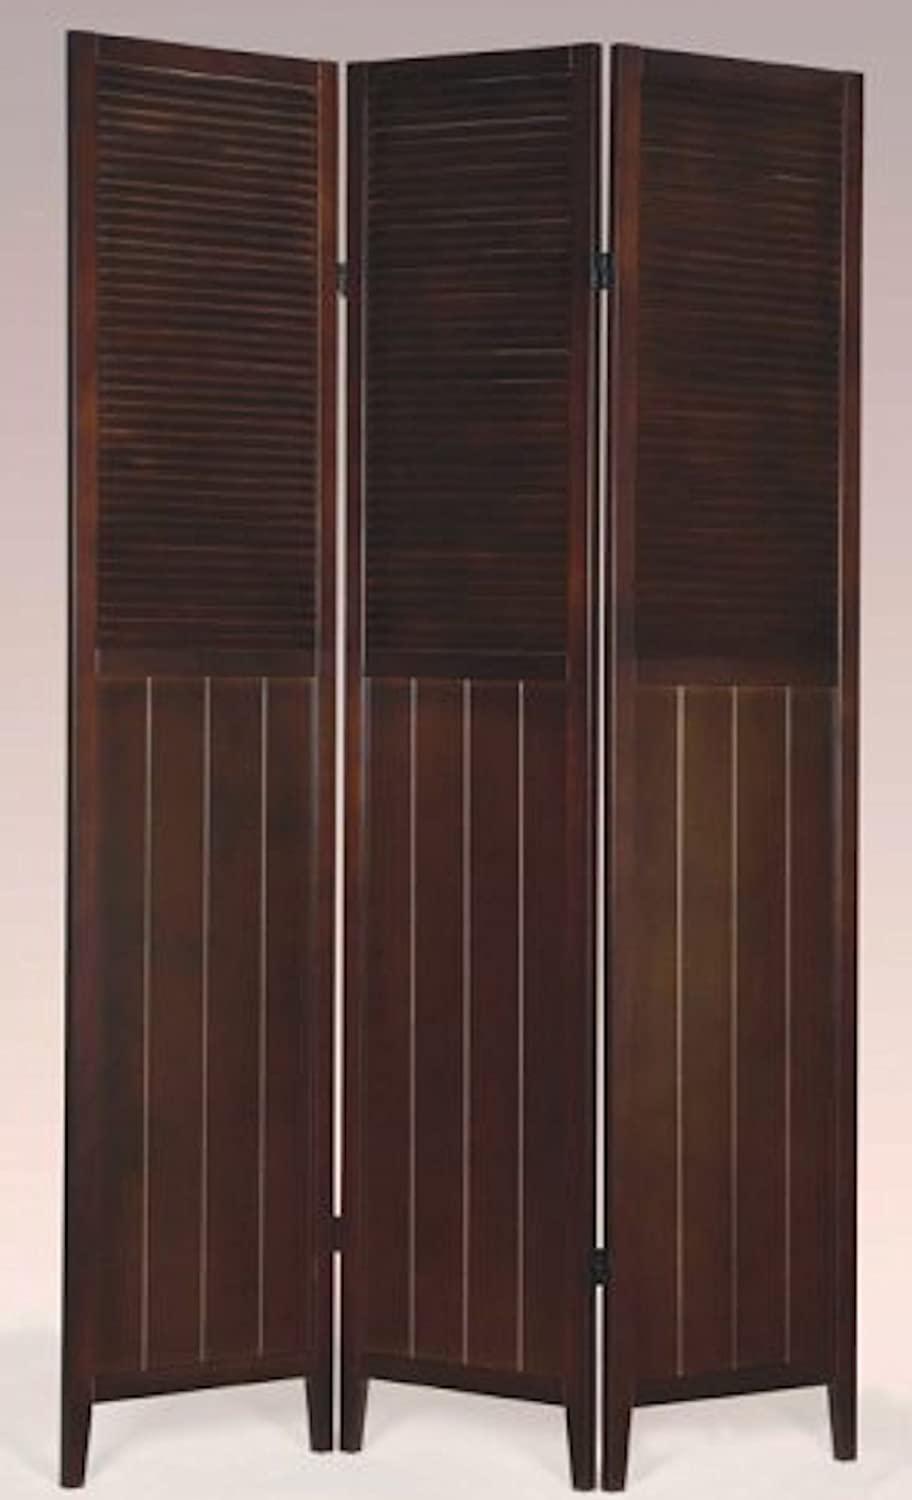 Legacy Decor 3 Panel Solid Wood Divider Award-winning store Shutter Espr Daily bargain sale Screen Room